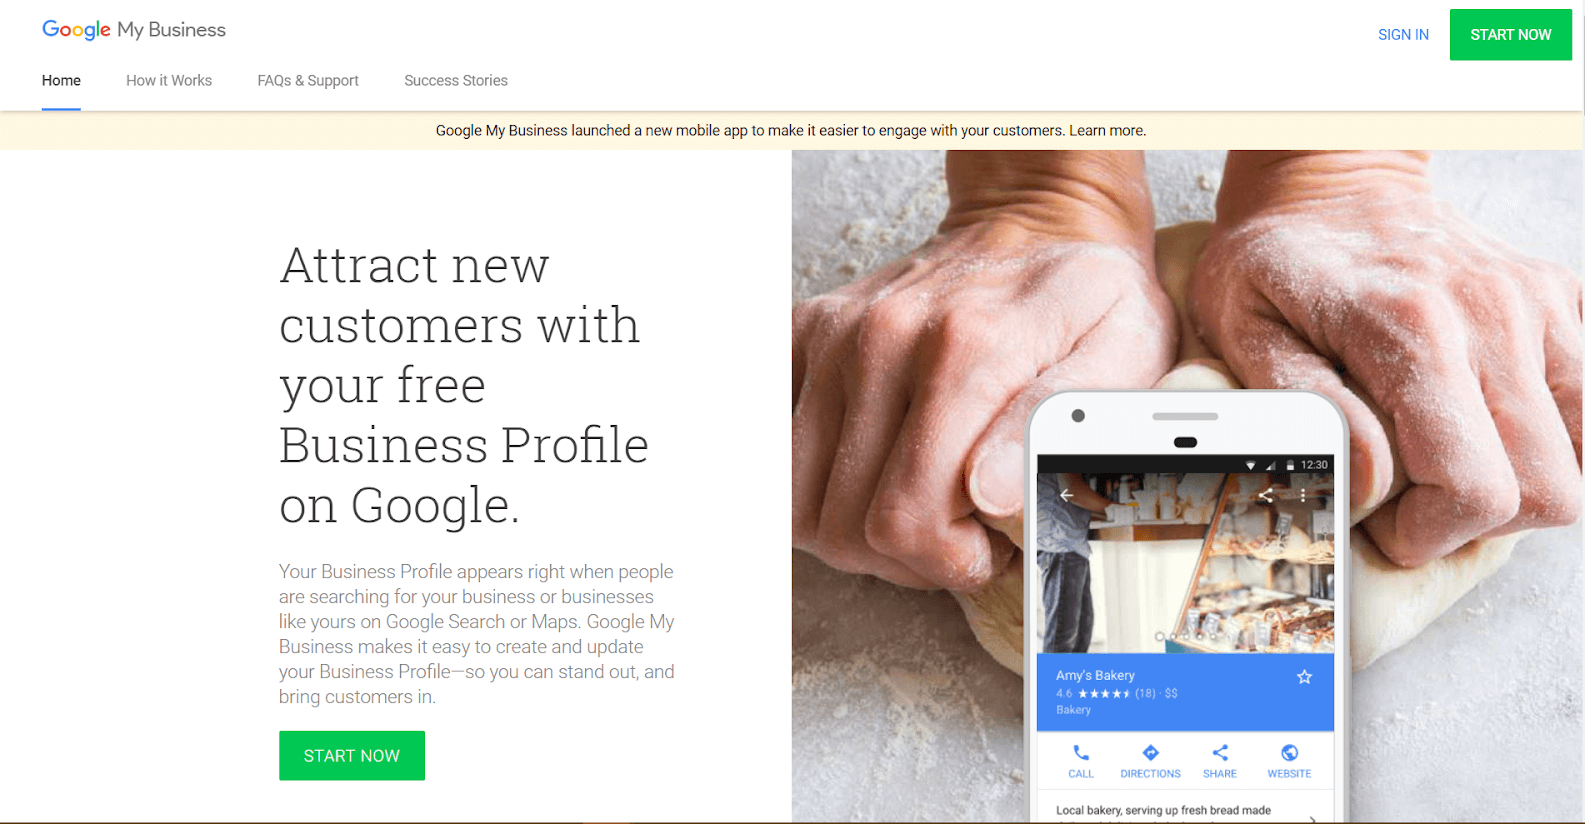 Google My Business Tools